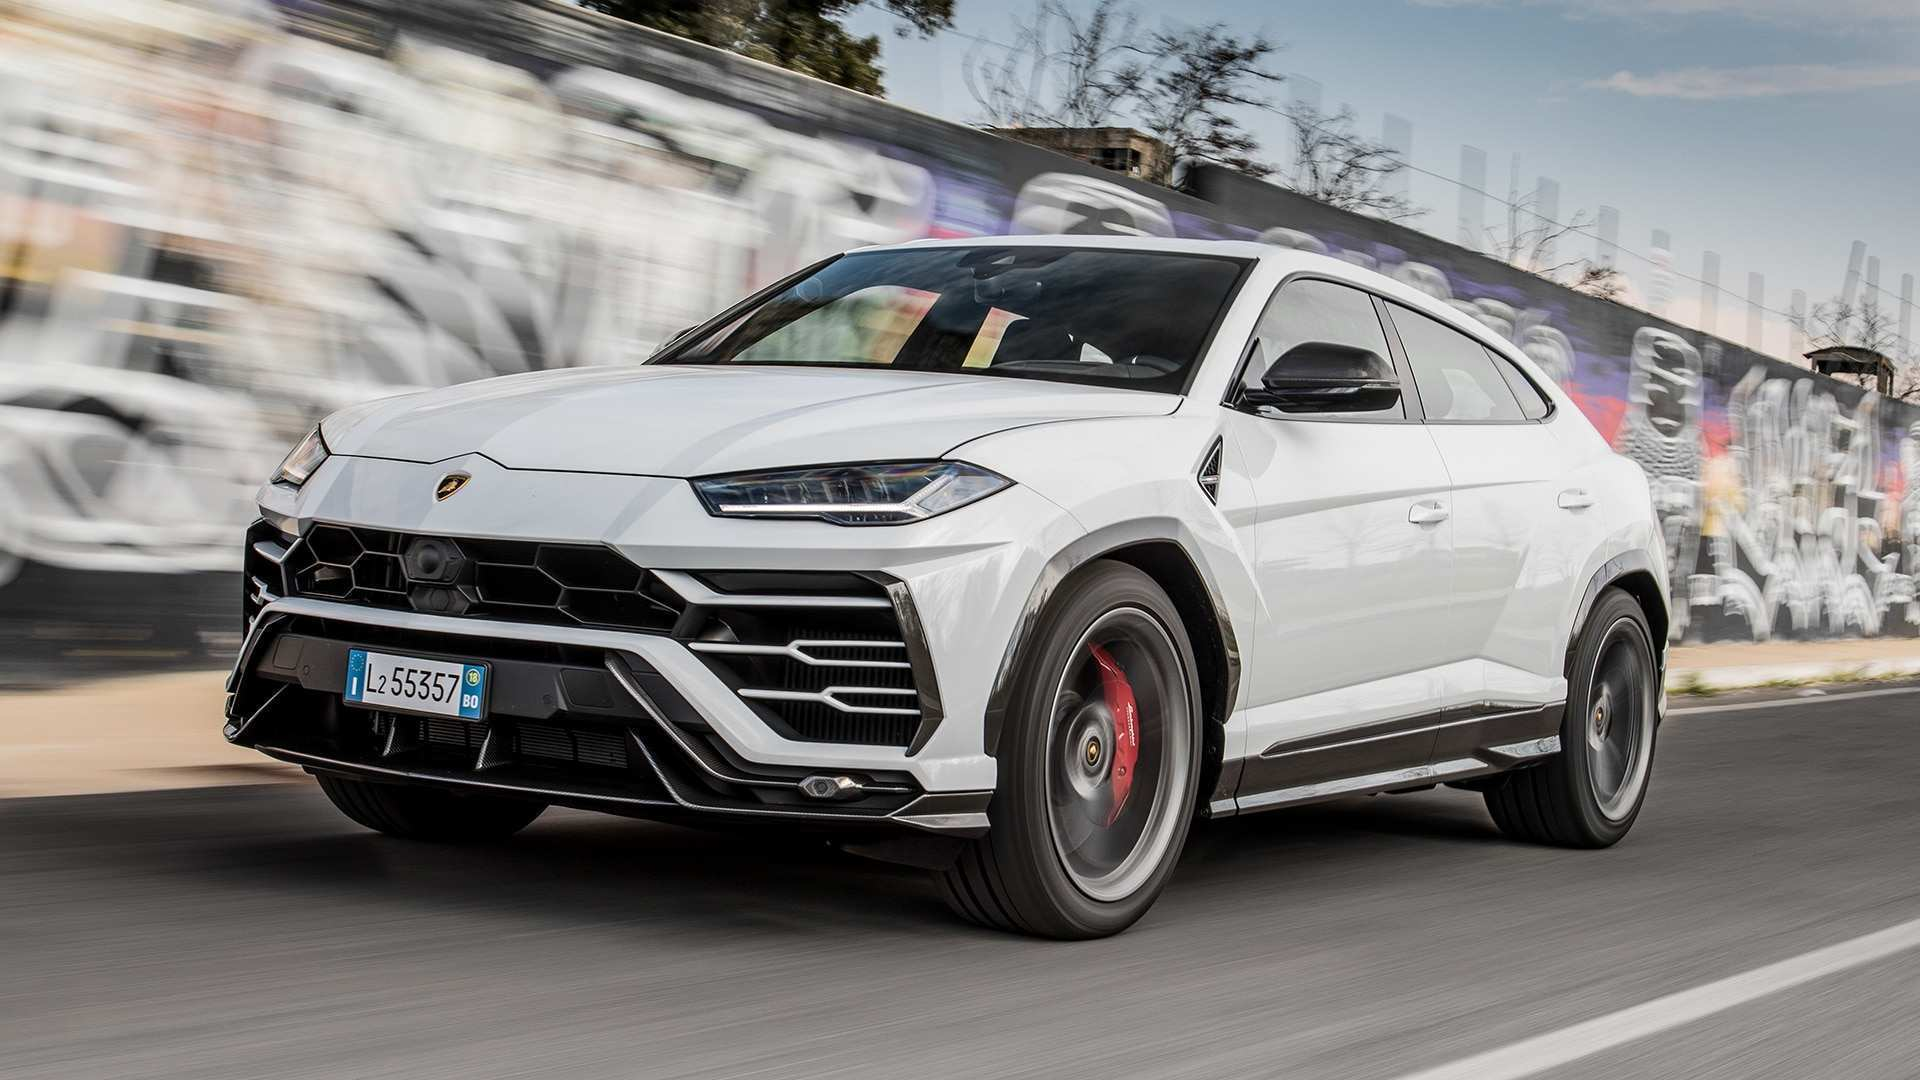 22 A 2020 Lamborghini Urus Redesign And Concept